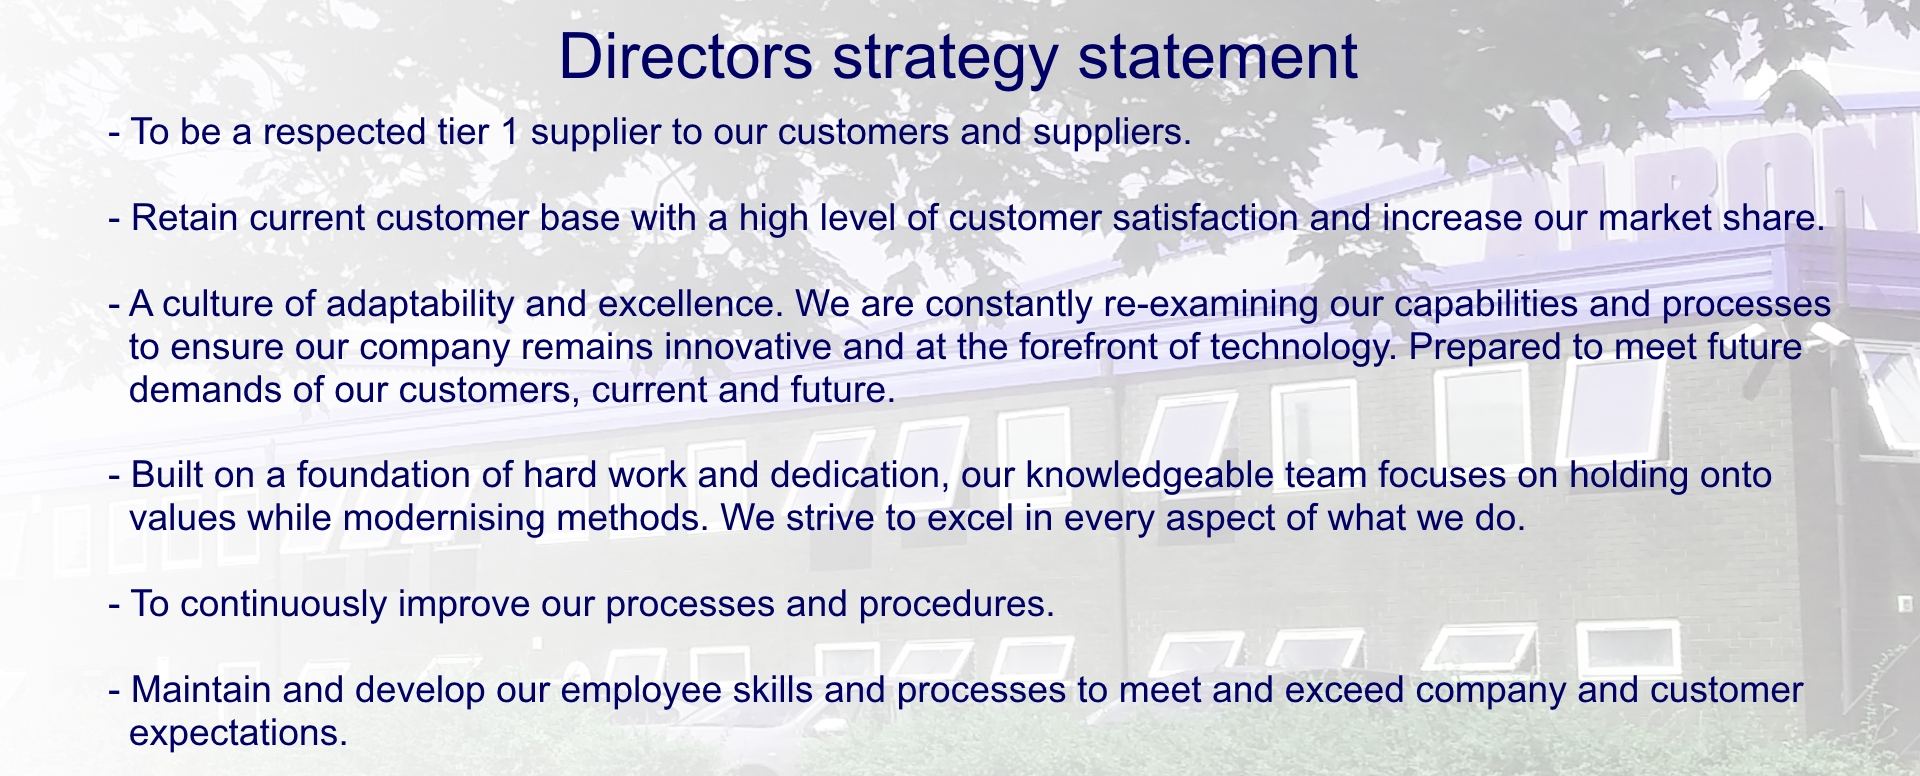 Directors Strategy Statement HomePage At the very bottom